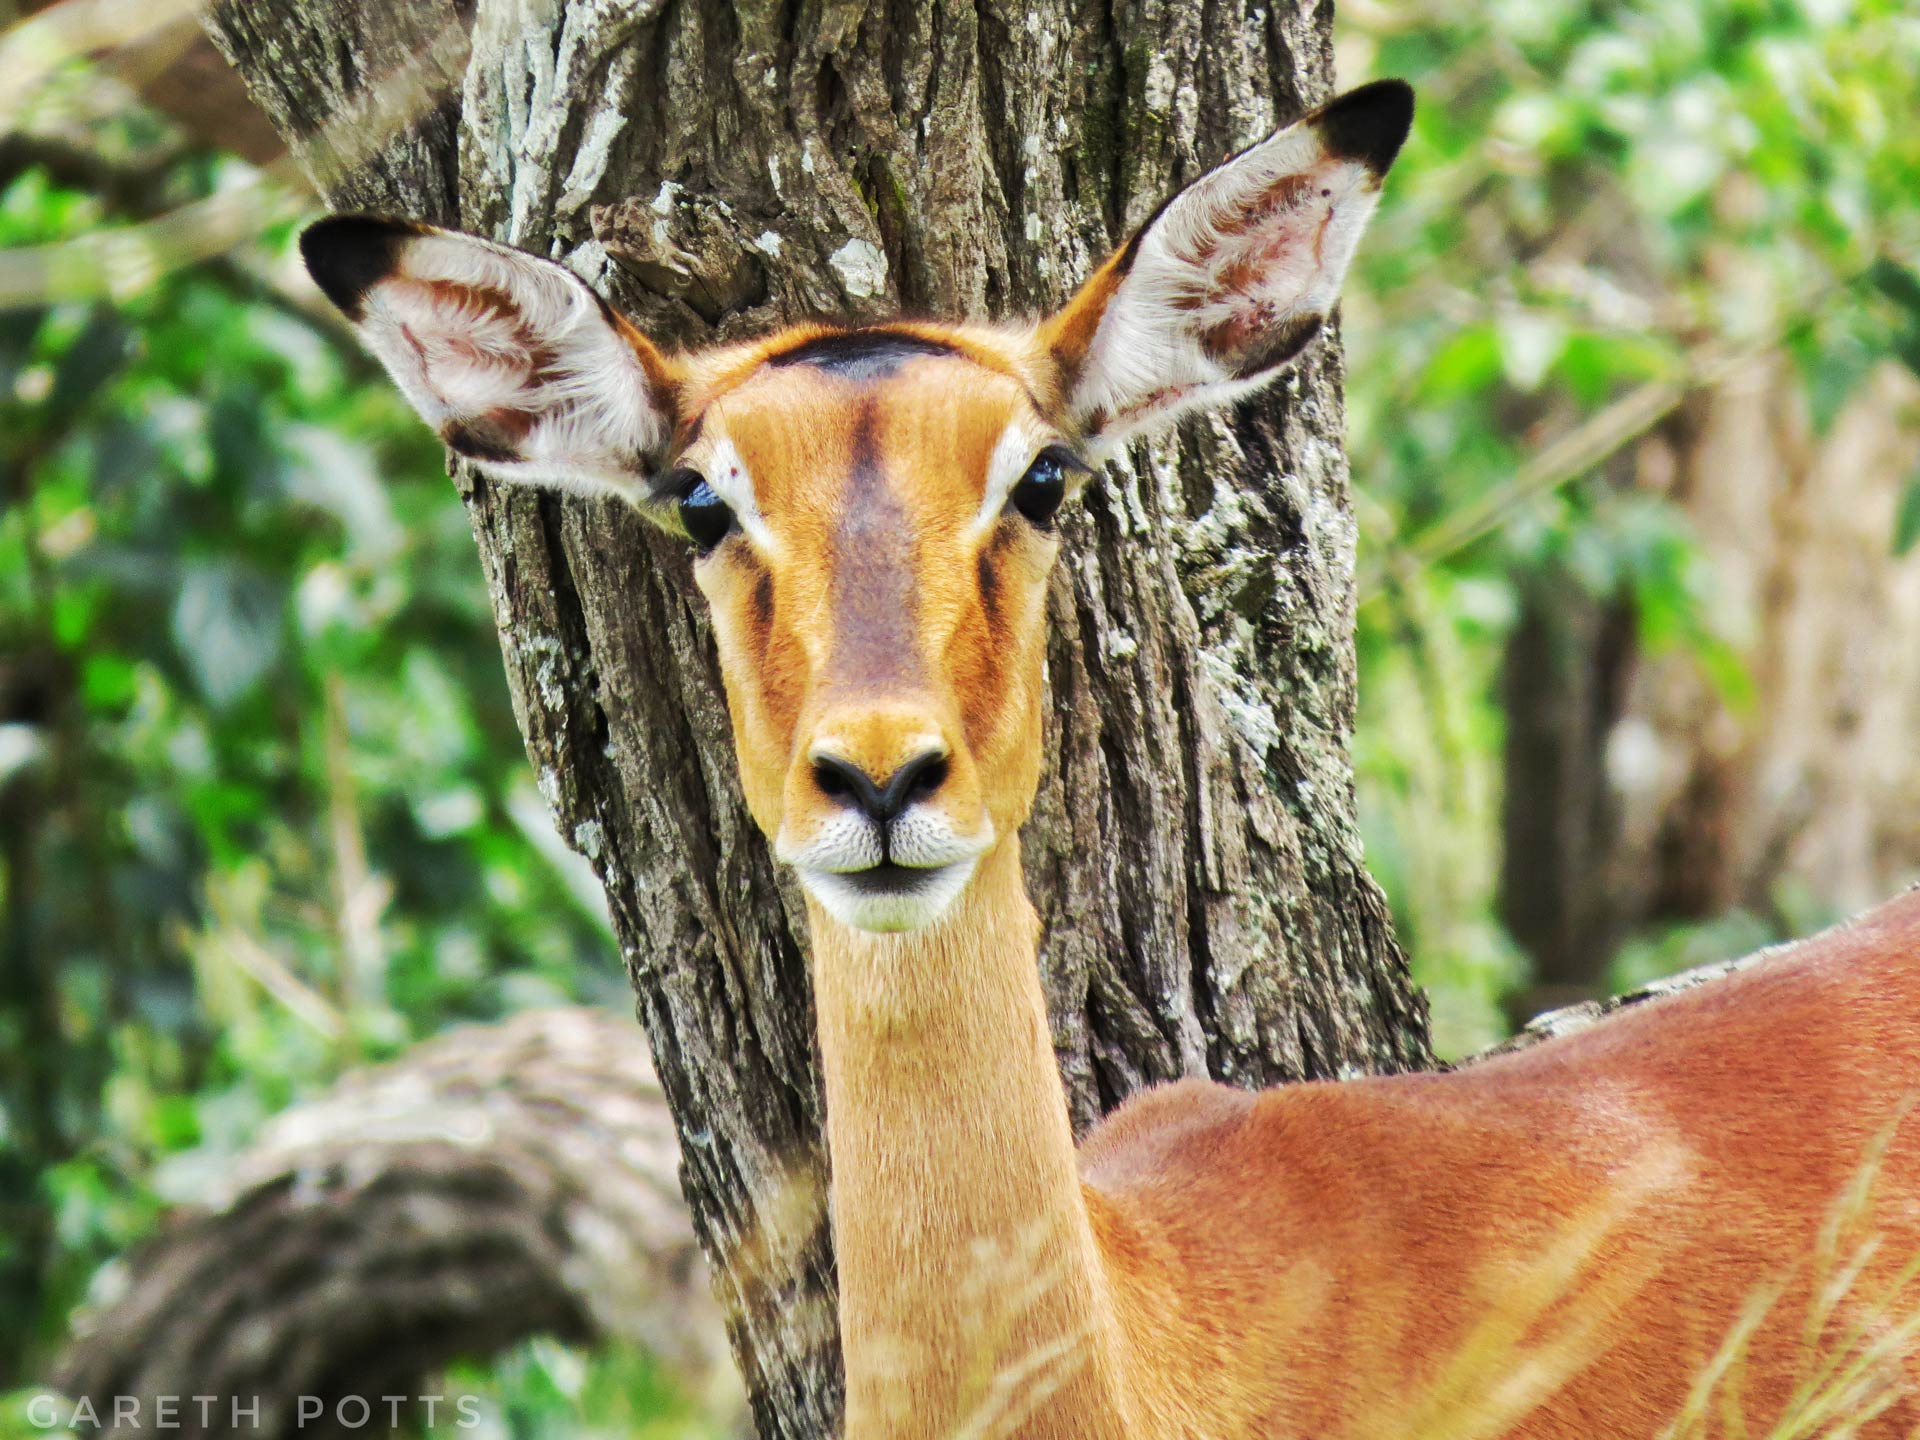 Those Fences We Built - Gareth Potts - Conjour Wildlife Photography Feature - 0 - Impala